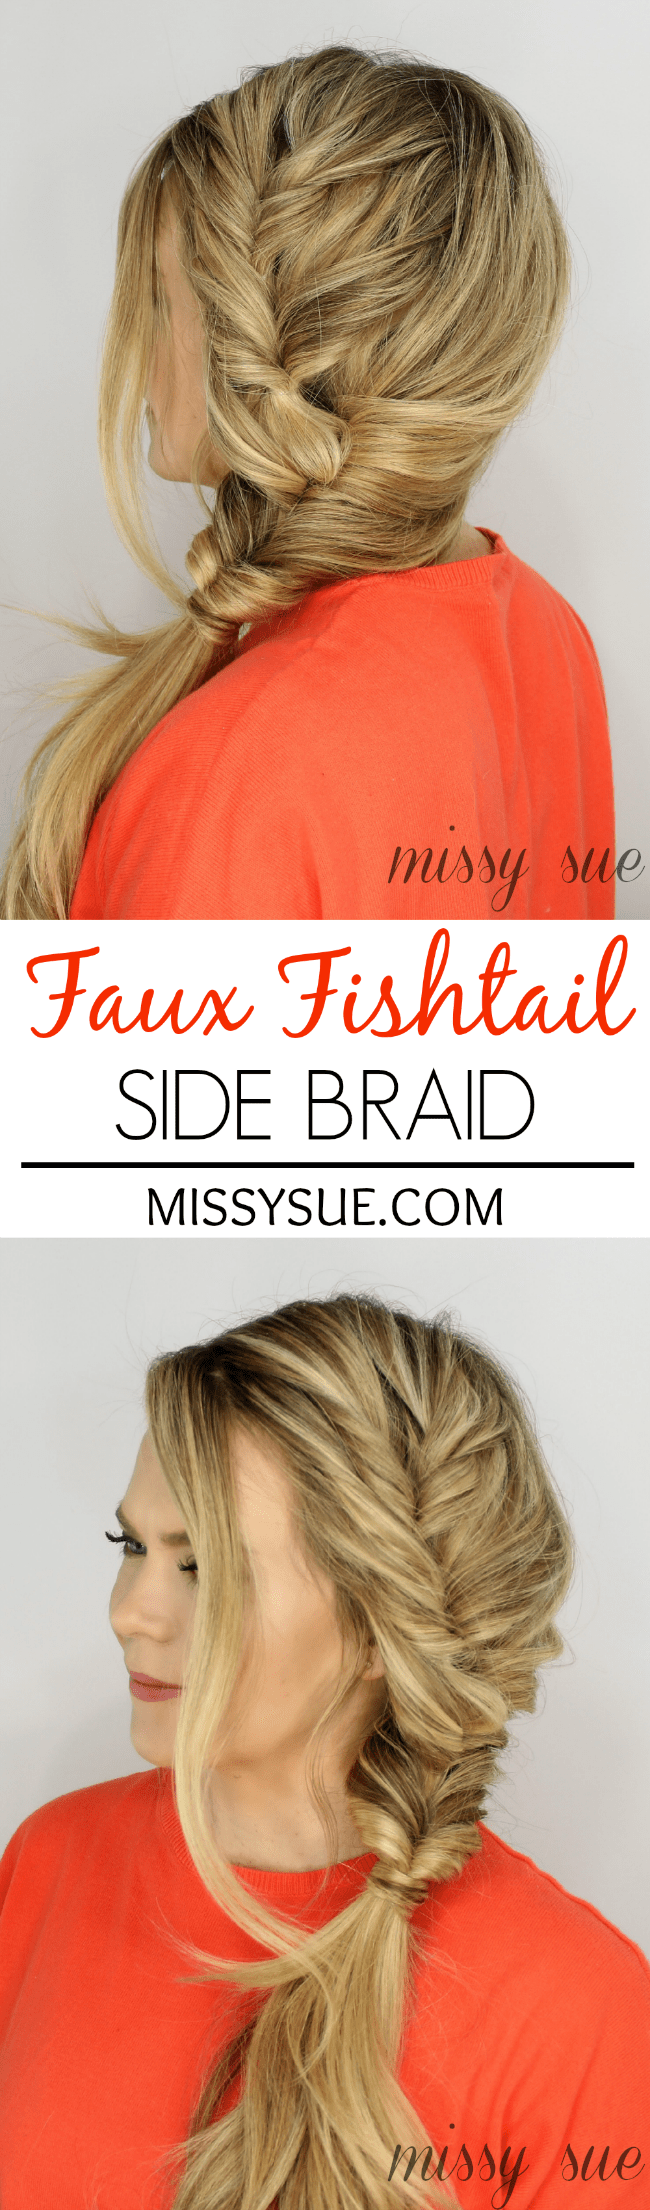 Faux Fishtail Side Braid